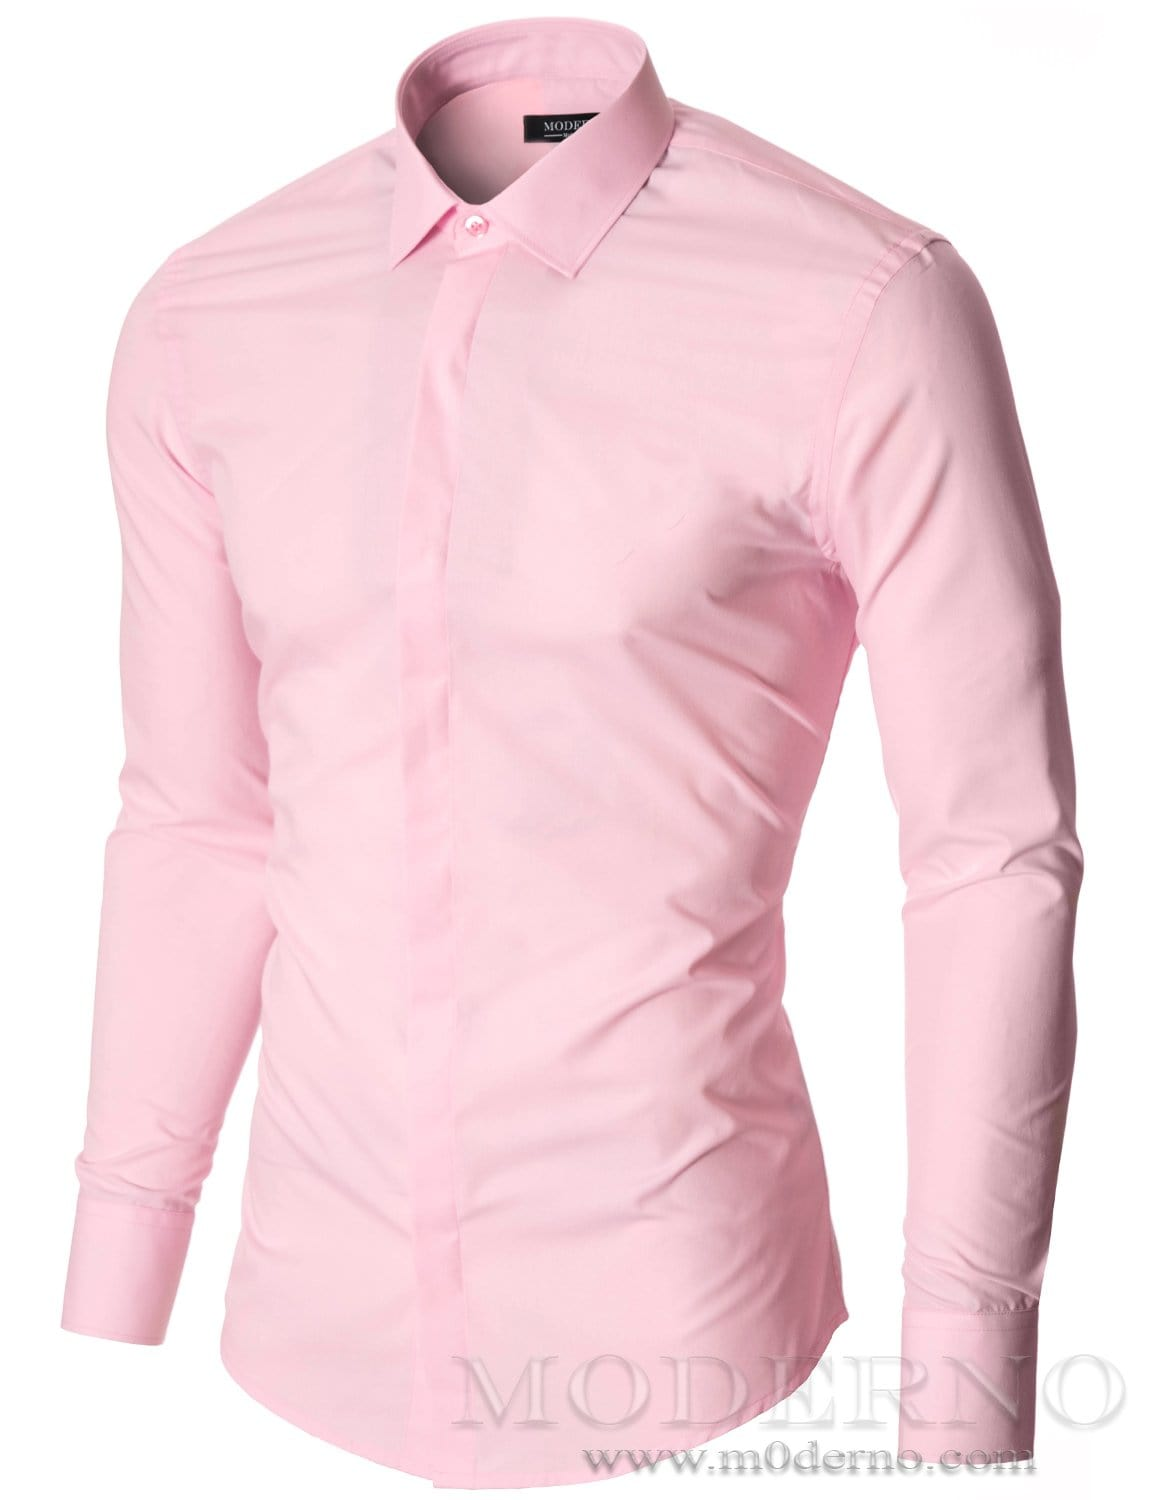 Mens dress shirt pink (MOD1447LS) - MODERNO